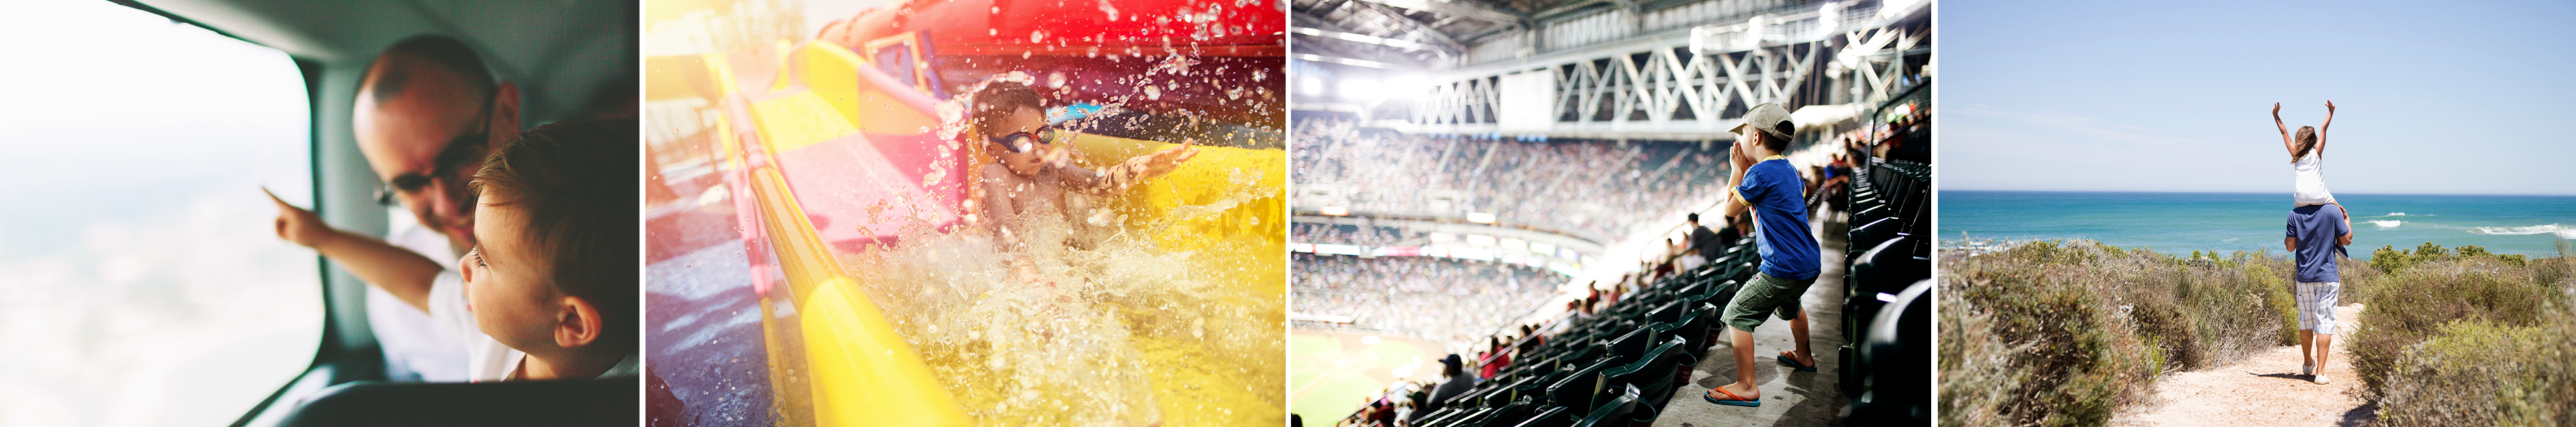 A collage of pictures including a child on a waterslide, a child watching a sporting event in a stadium, and a father carrying his daughter on his shoulders as they walk a path to a beach